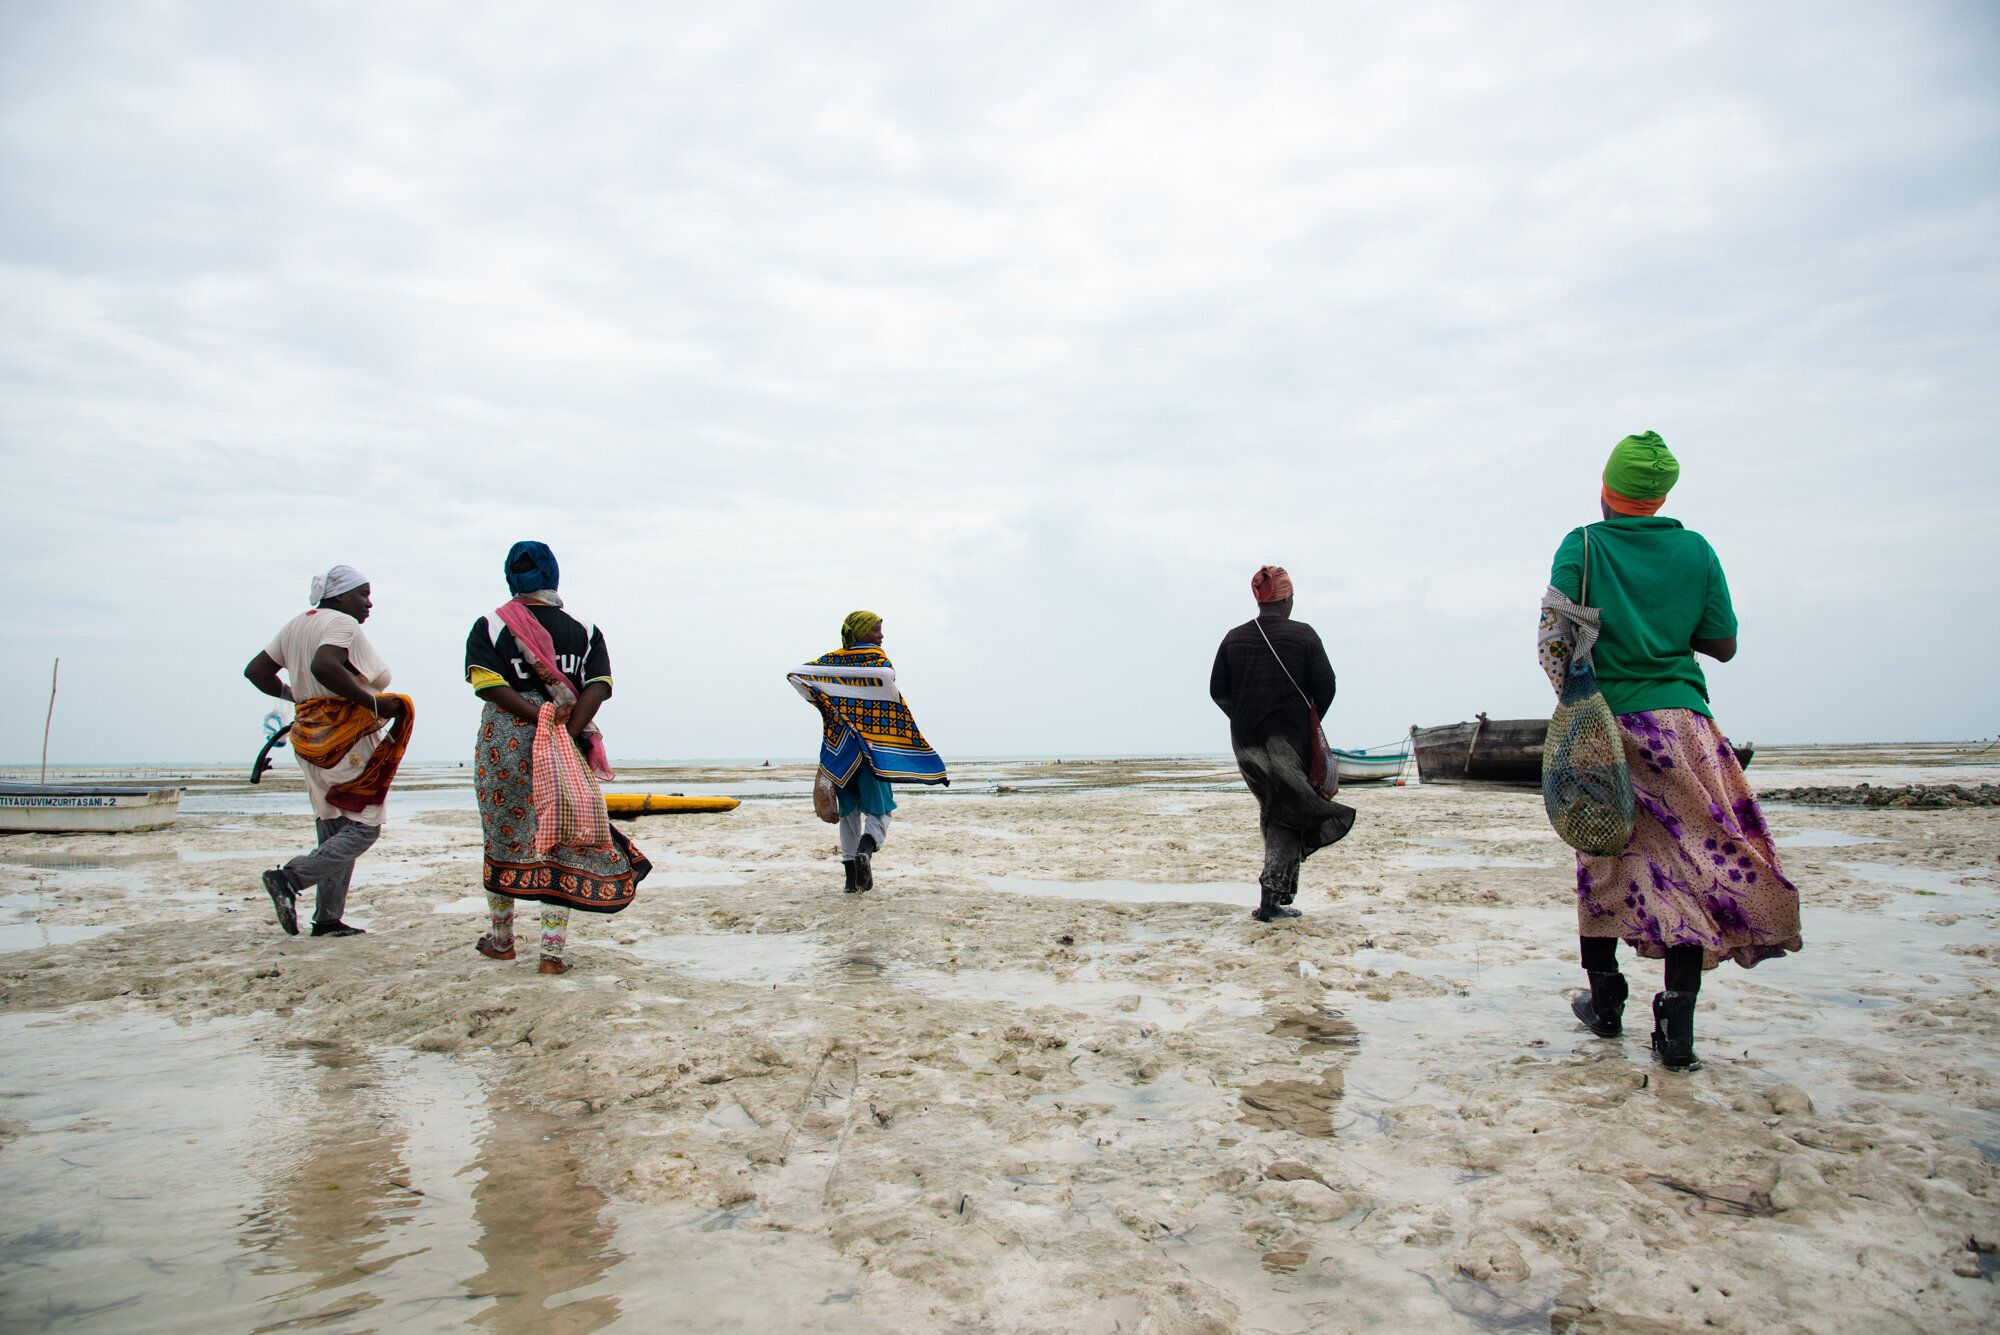 The sponge farmers walk to their farms at low tide. The women have only a few hours to work before the tide is too high.